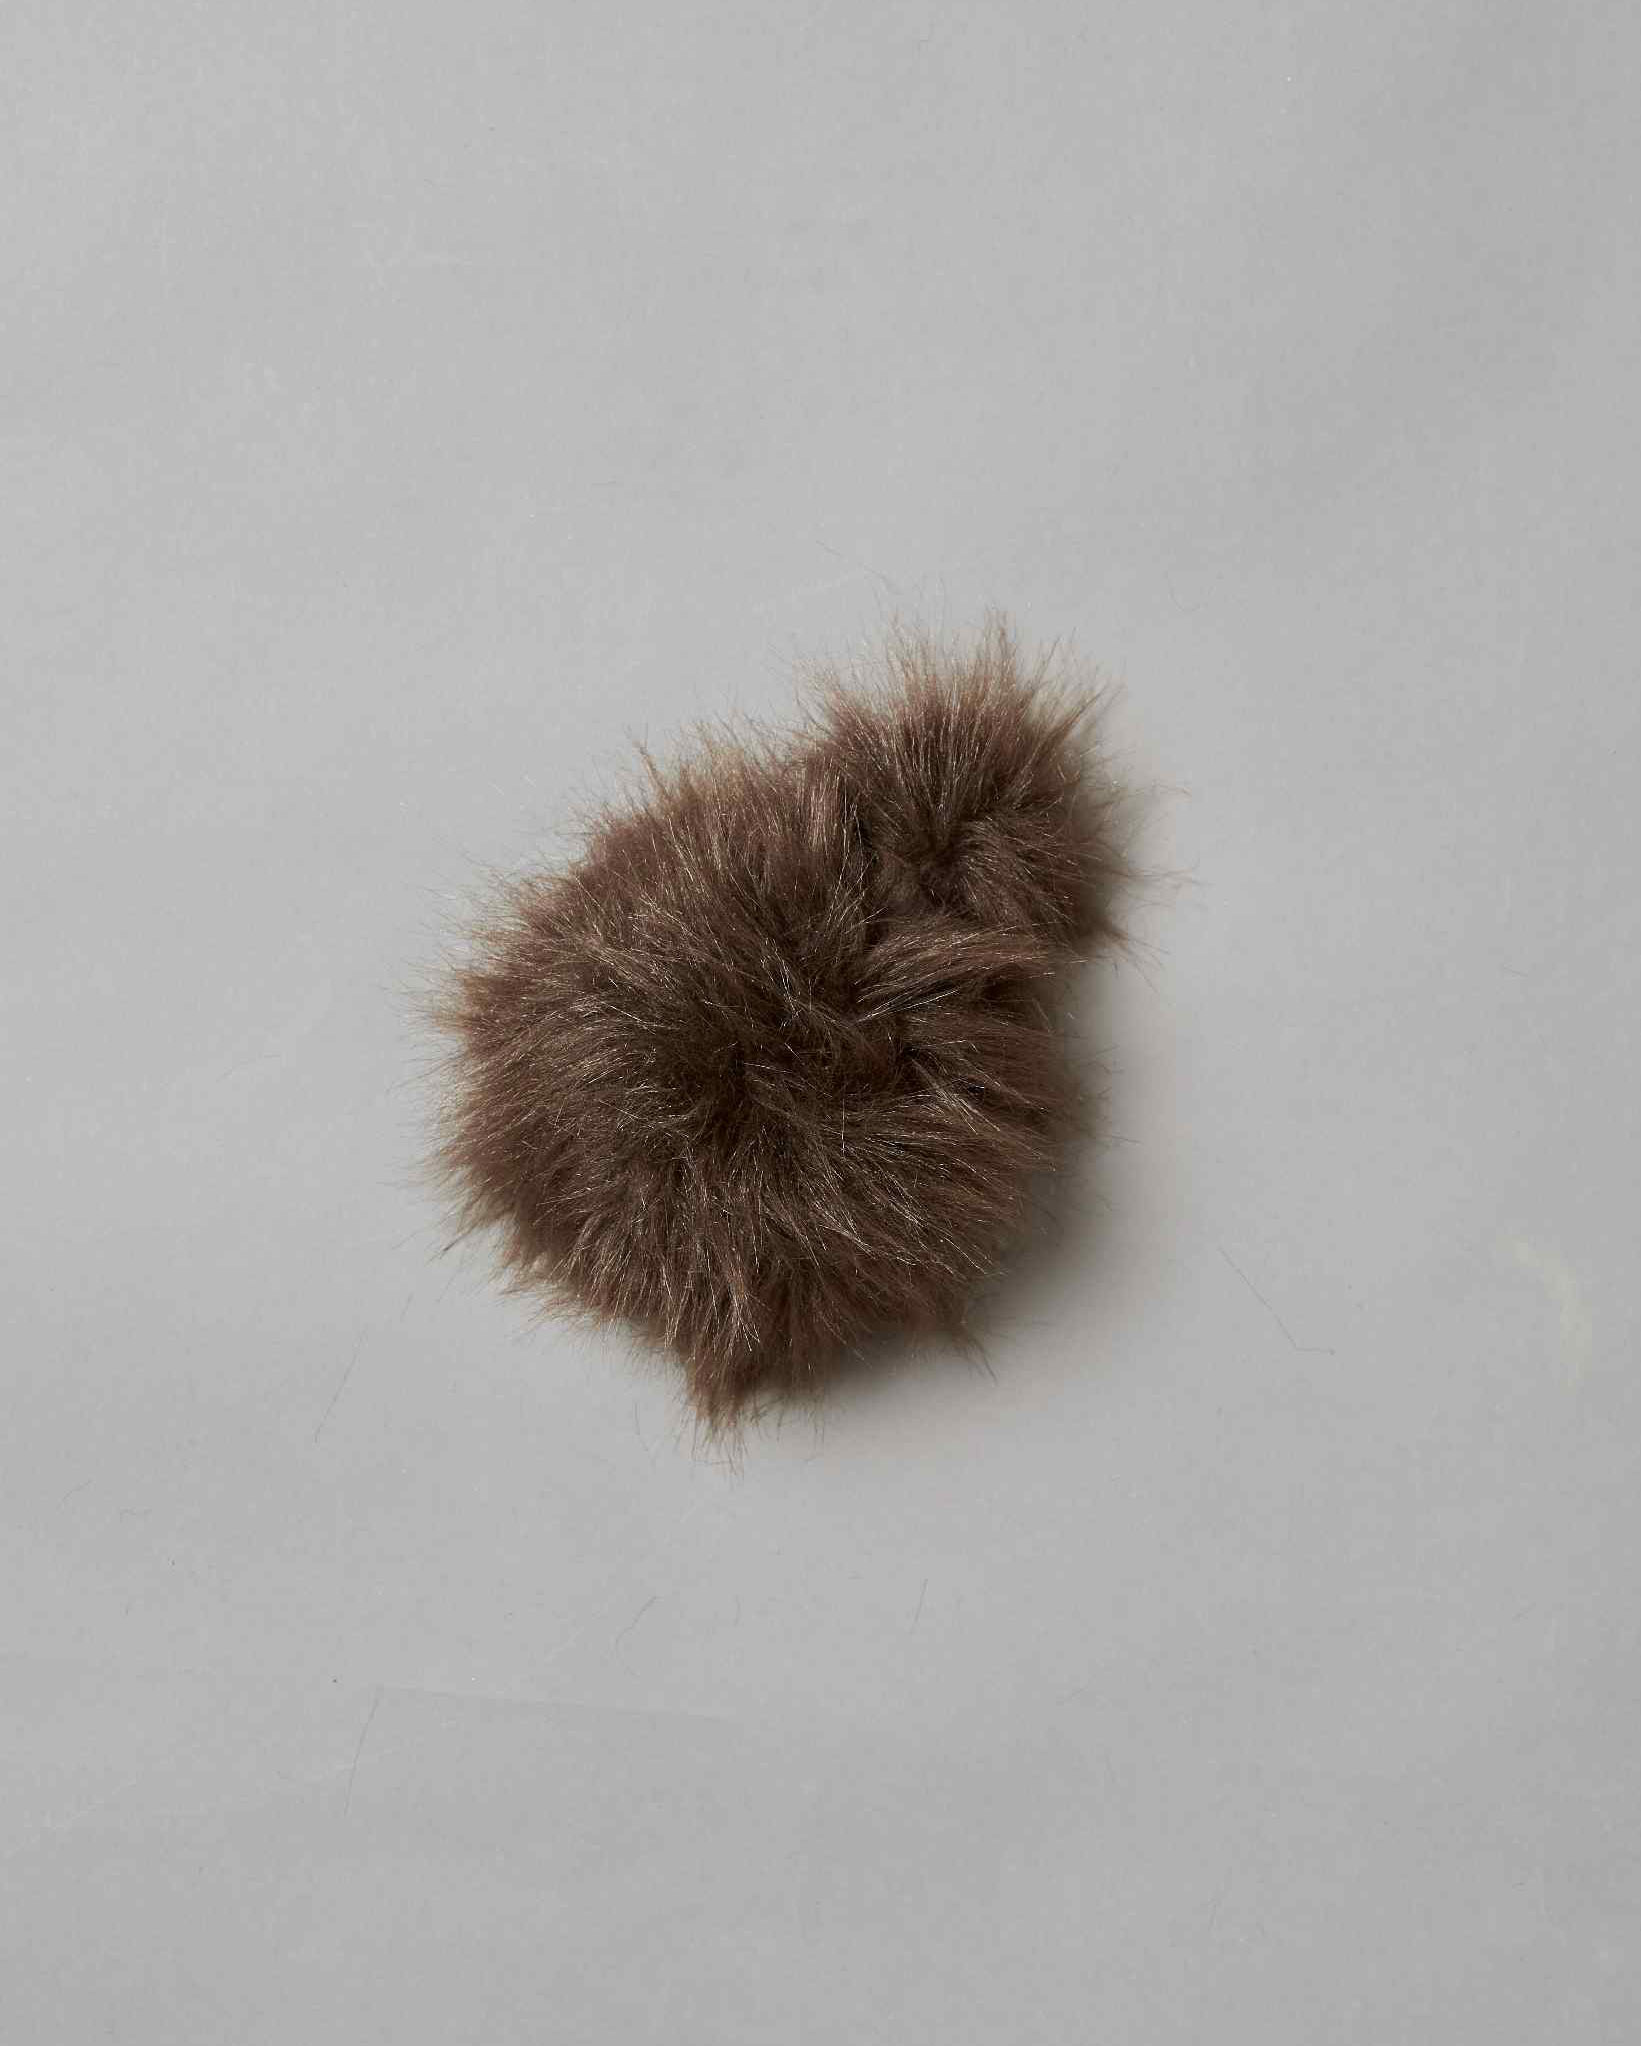 Two foam balls covered in brown fur